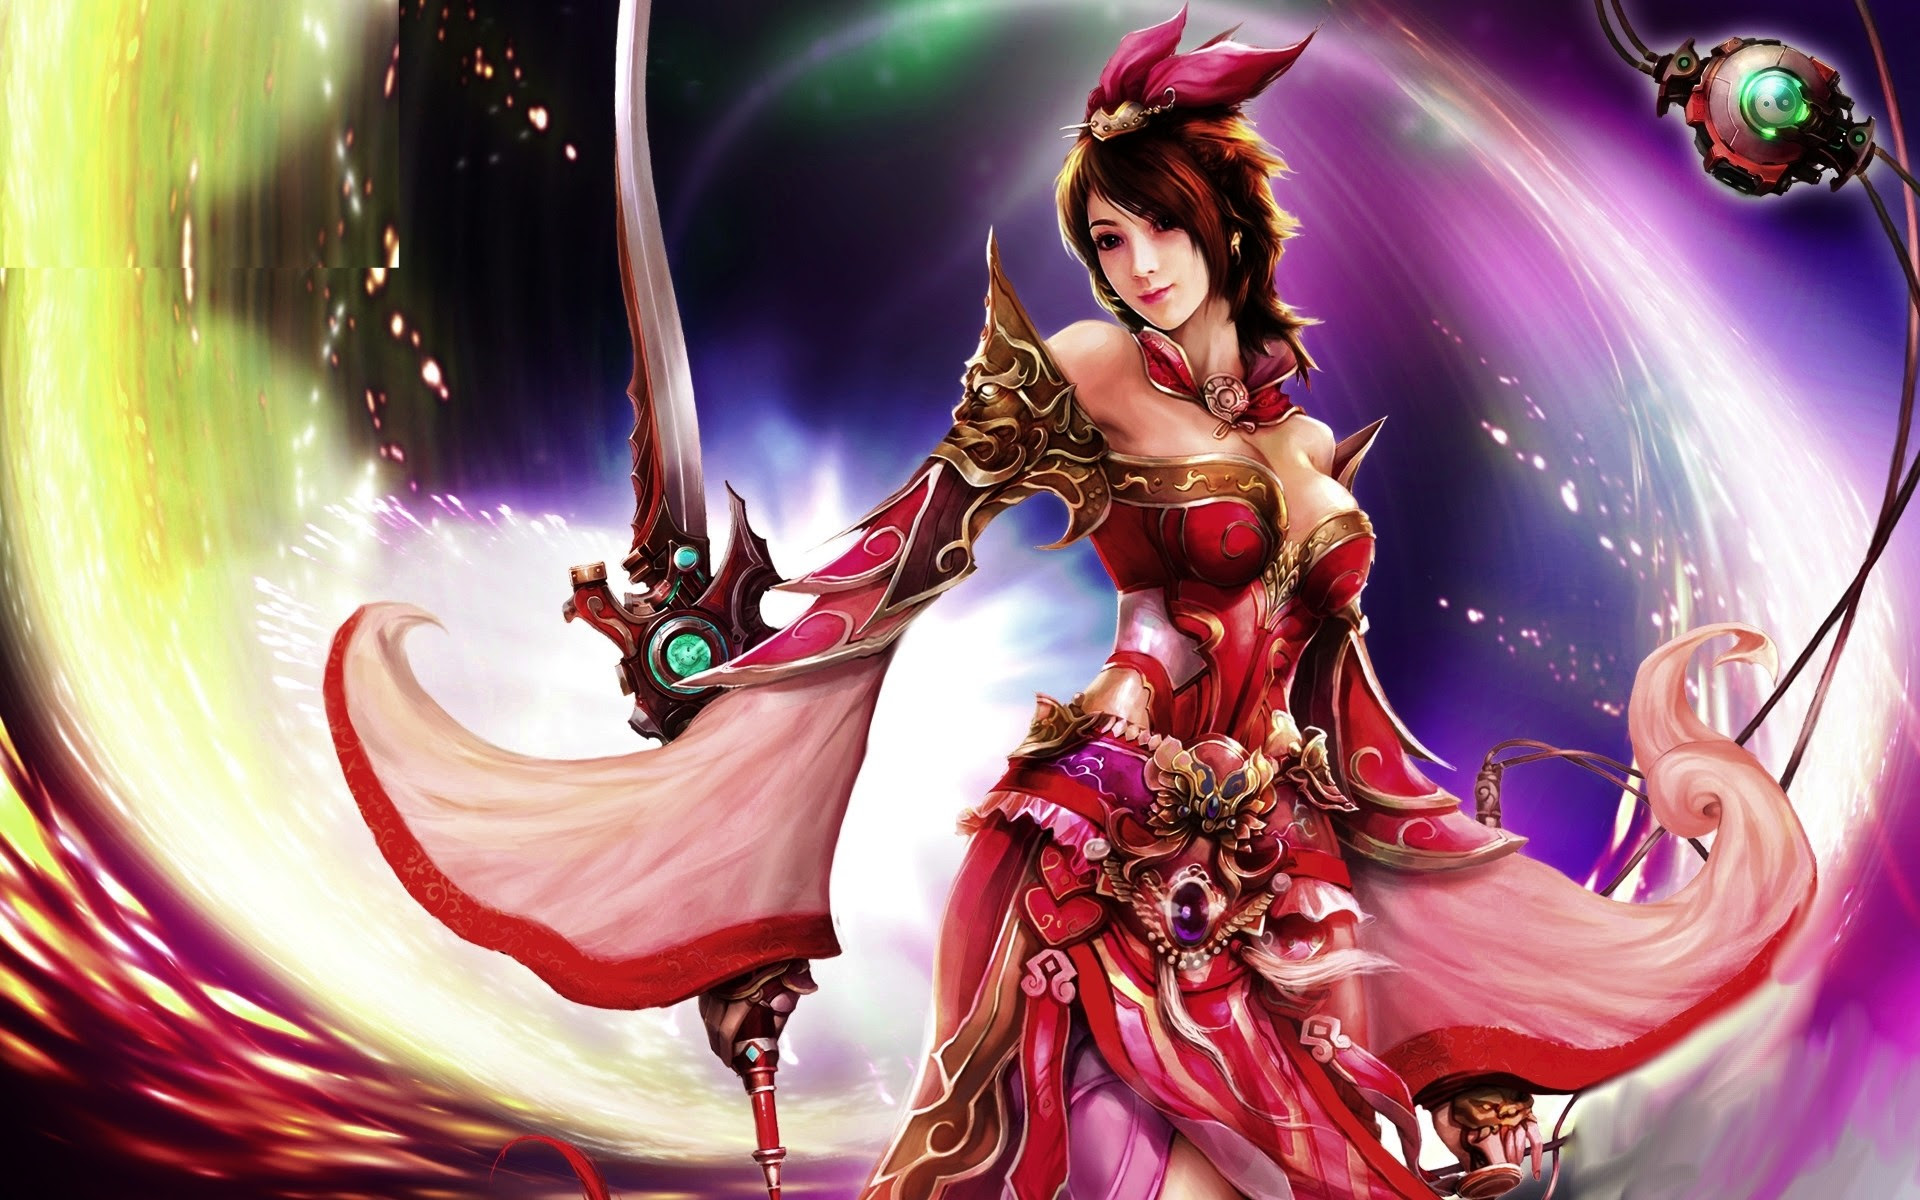 Anime Female Warrior Wallpaper (71+ images)